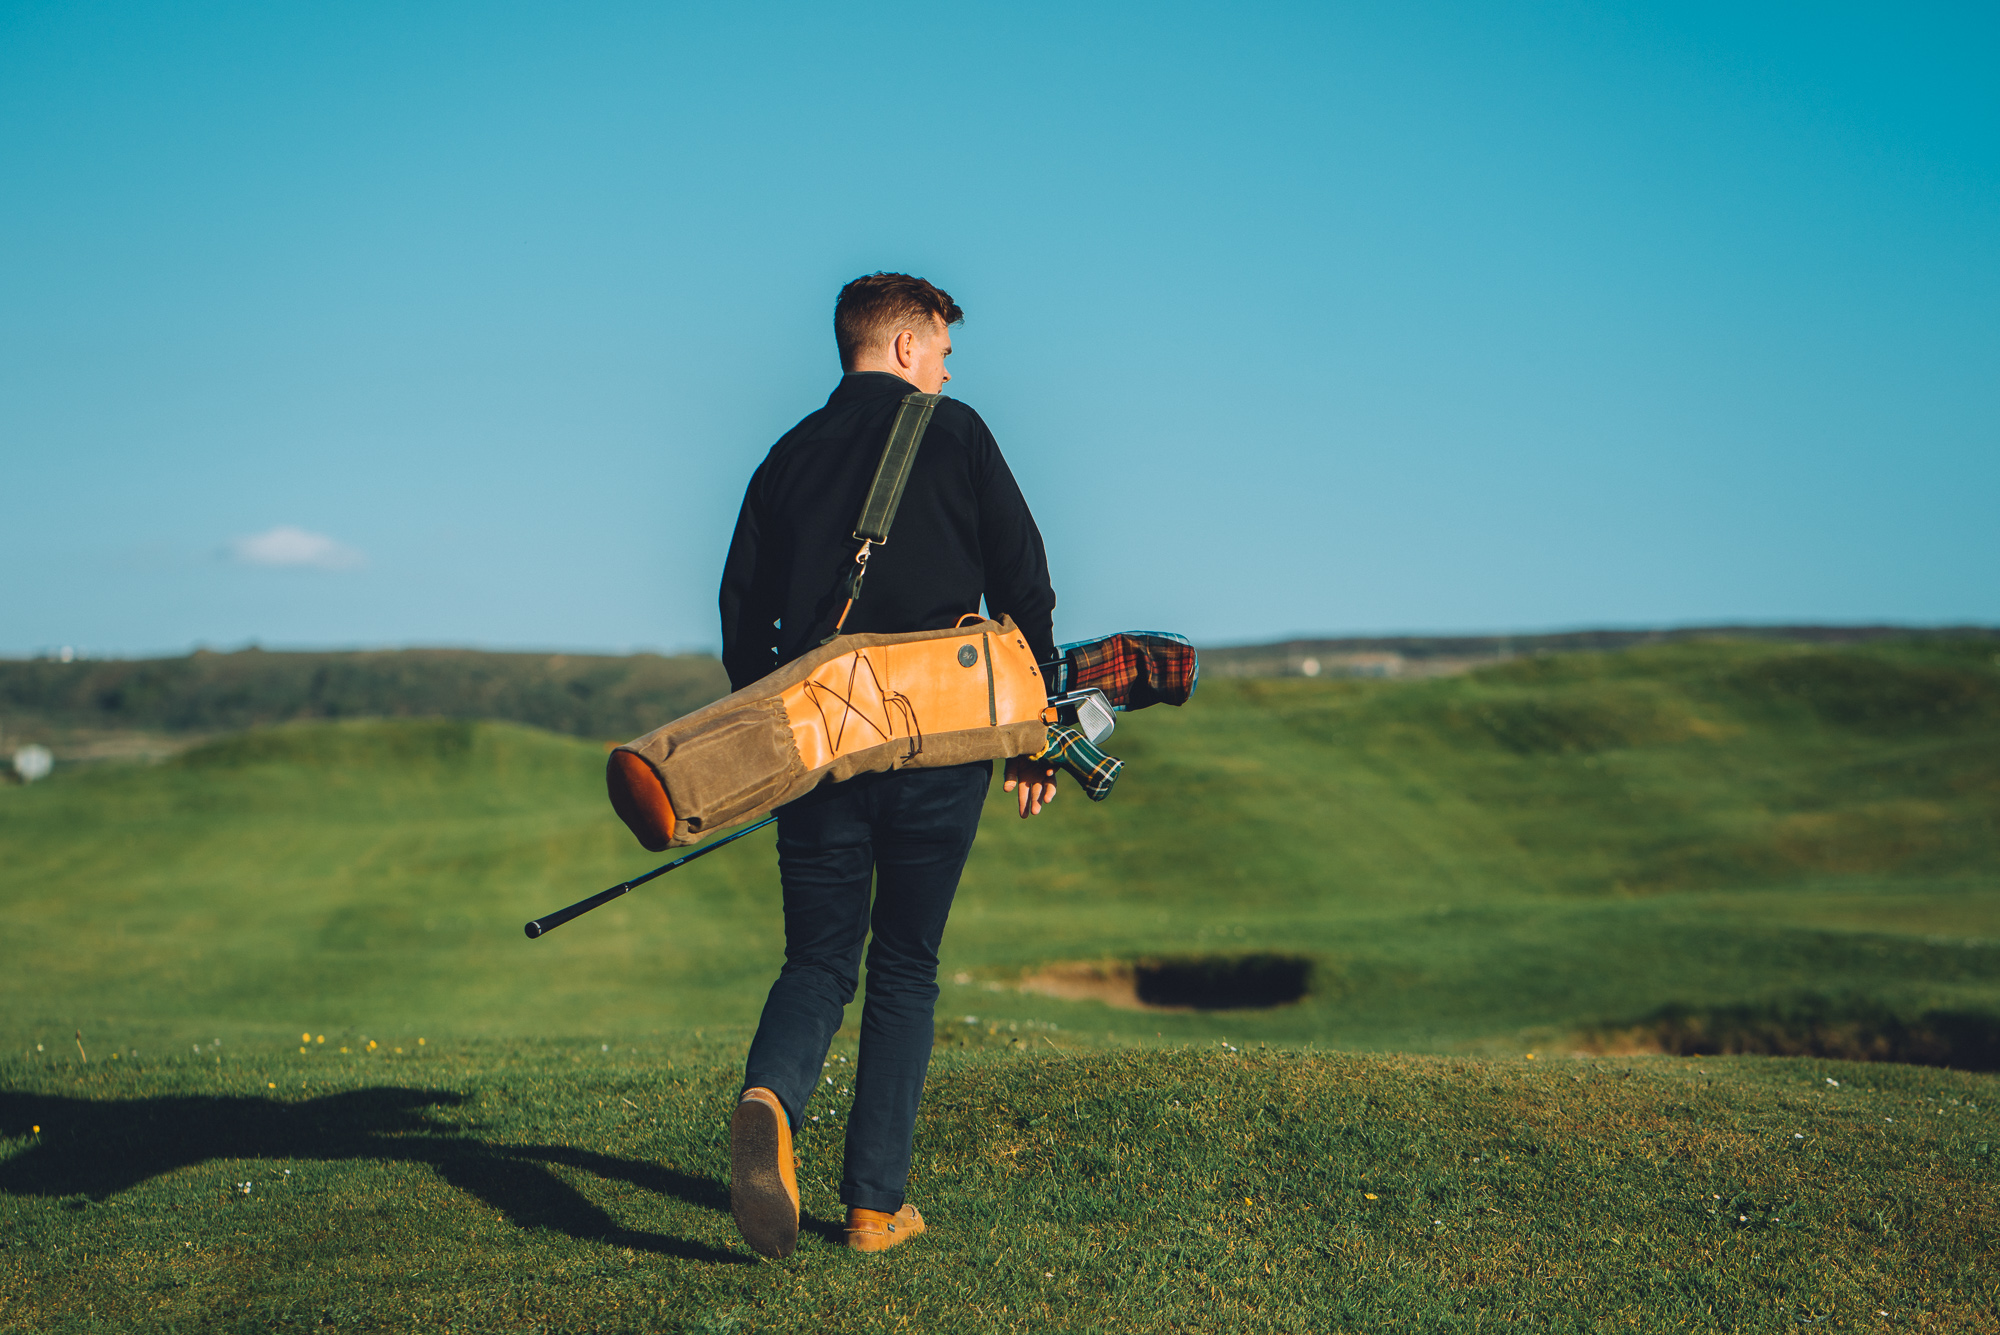 The Fescue Project - Hand crafted by Seamus Golf is a bag for true minimalists.